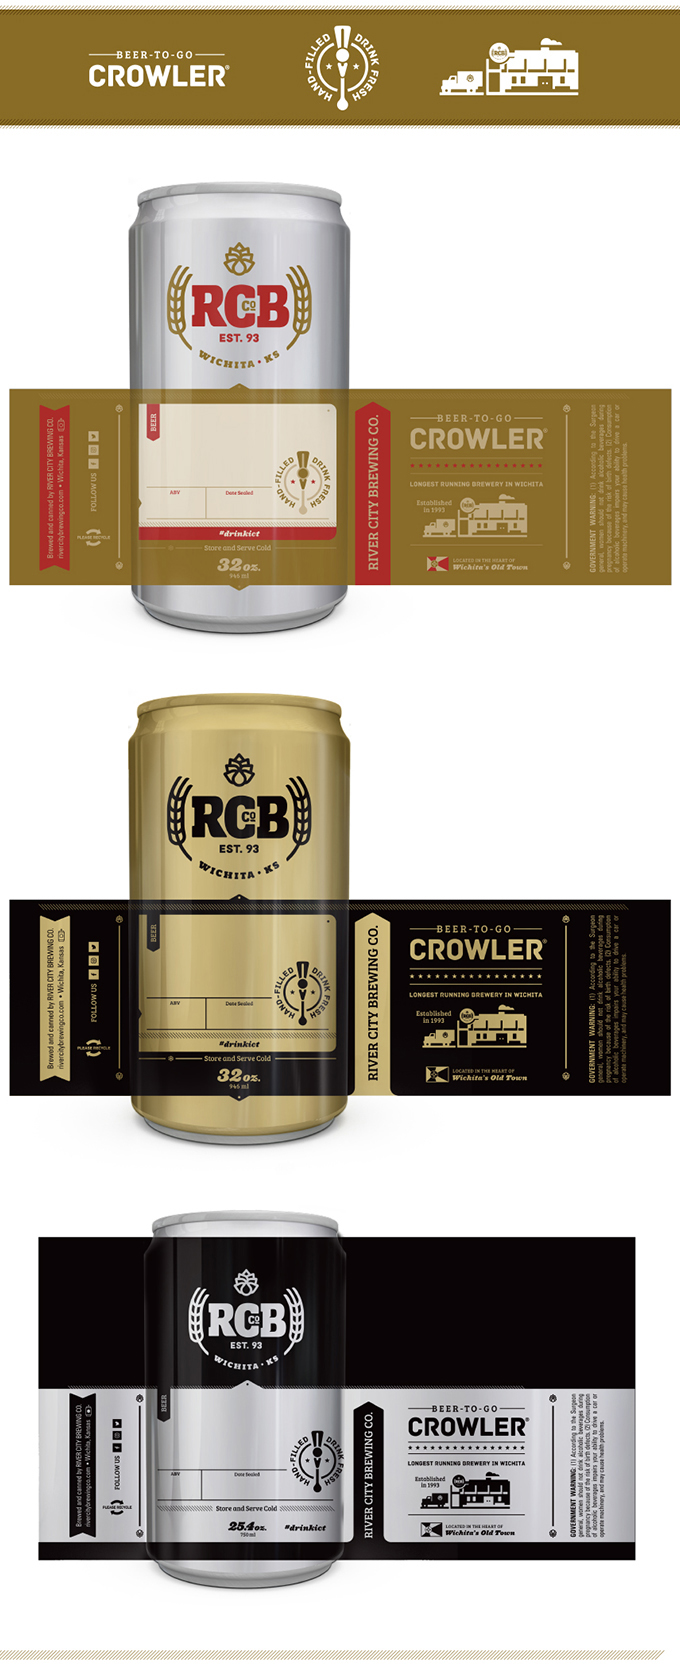 rcbcrowlers